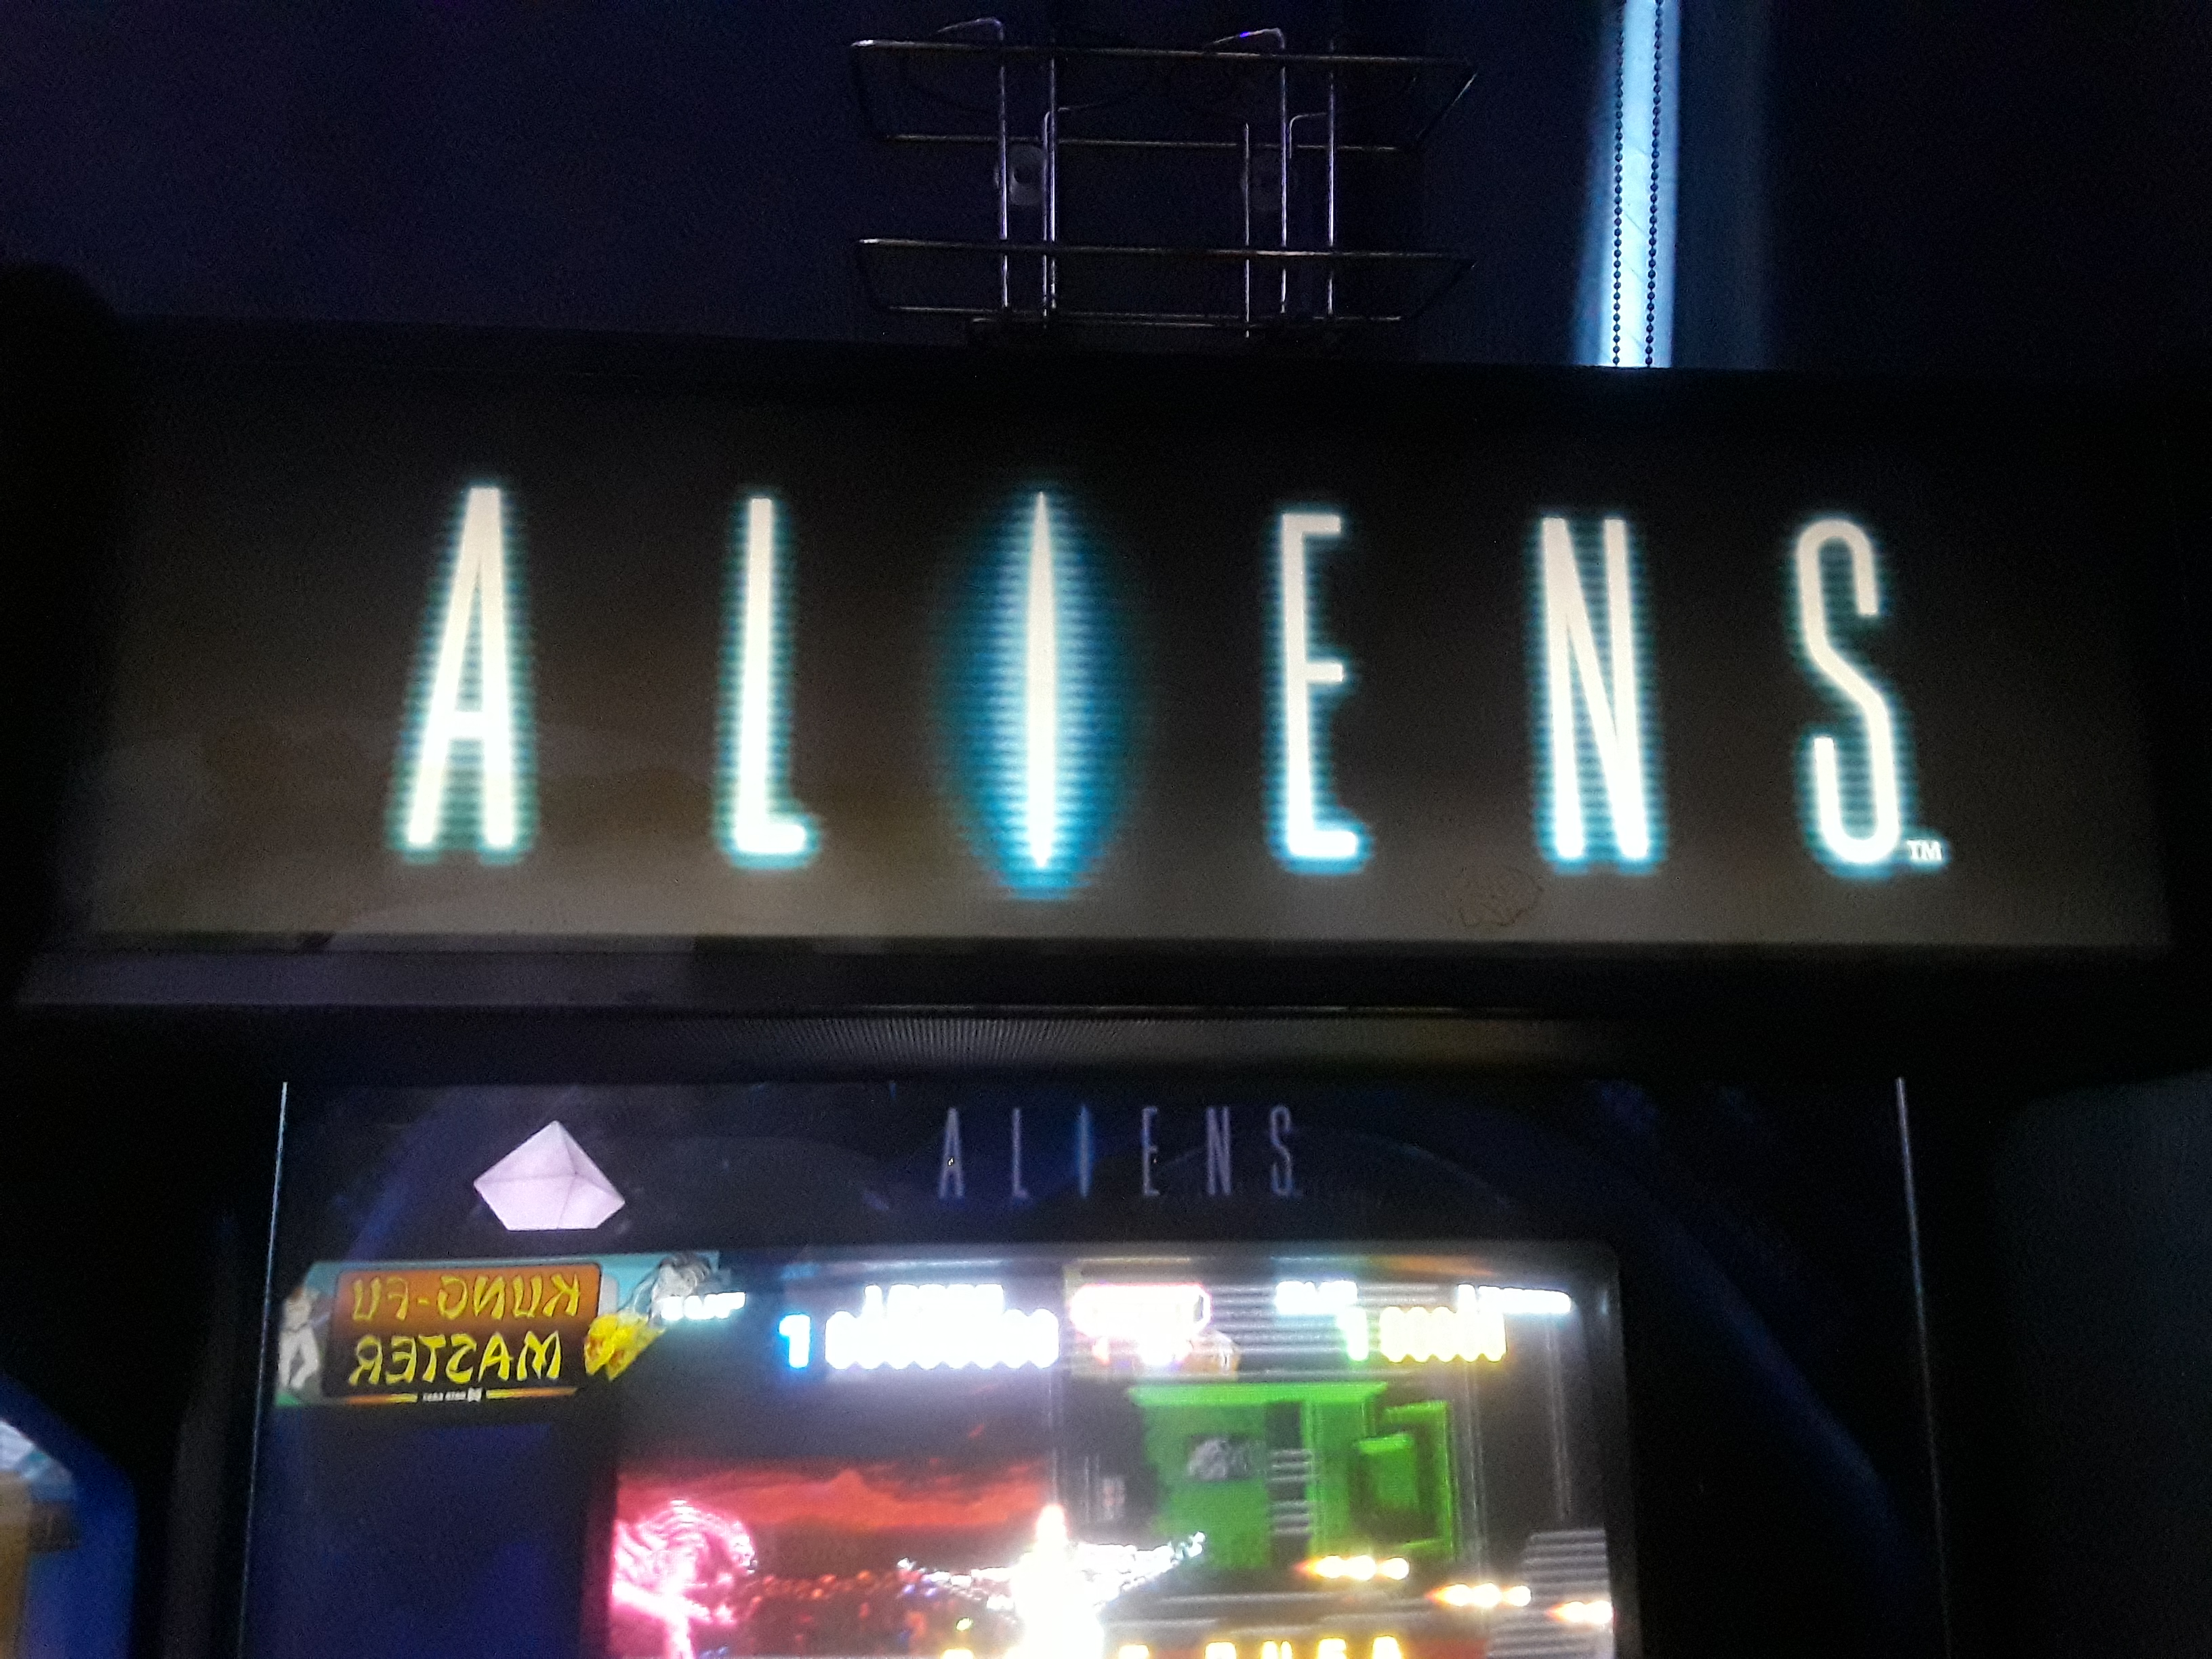 Aliens 24,900 points